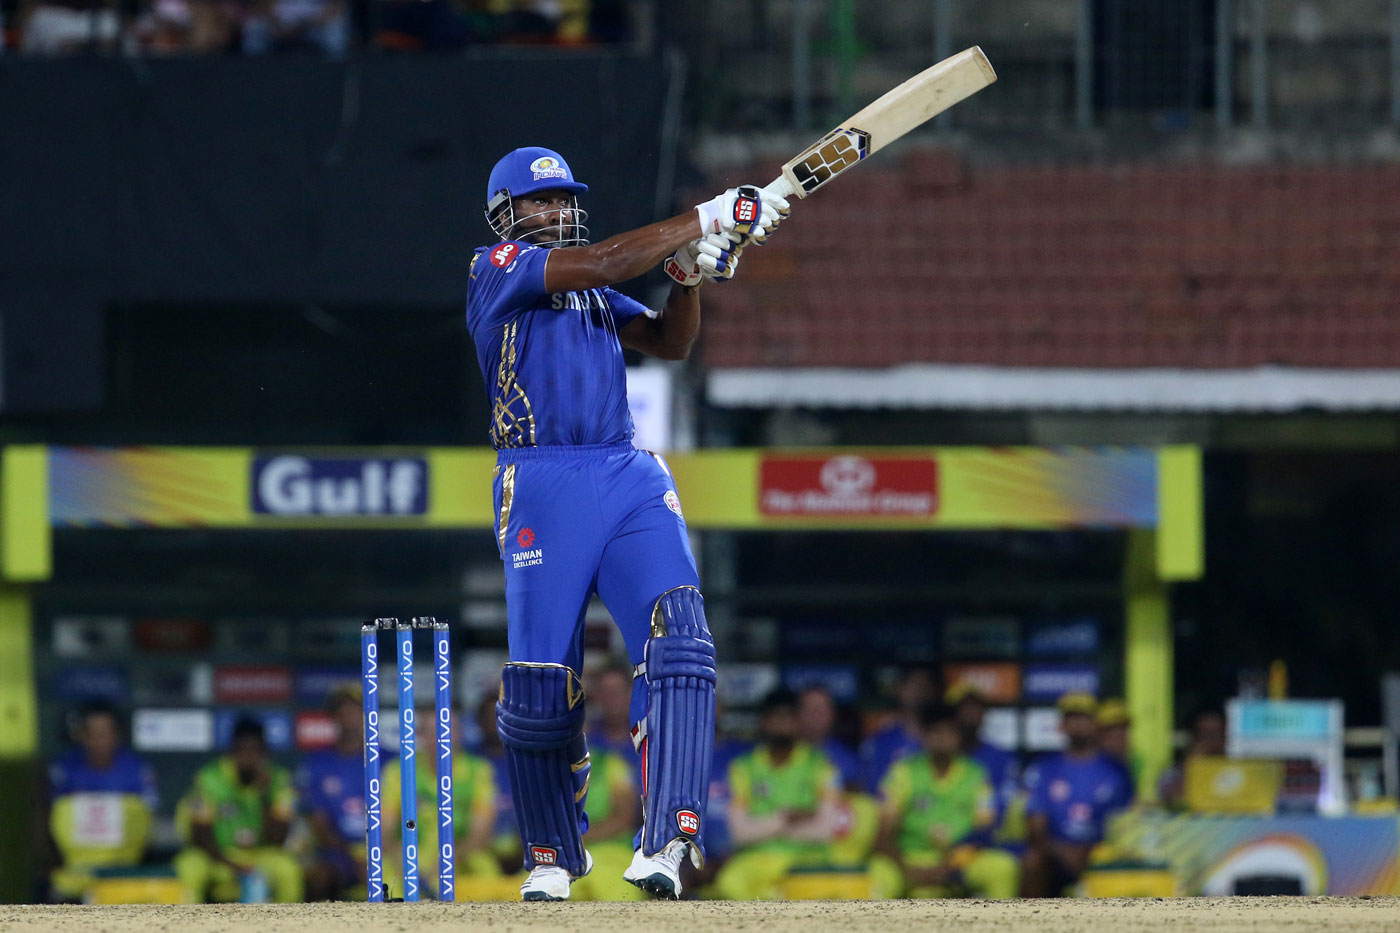 In 2009, after a fierce bidding war, Pollard was sold to the Mumbai Indians for $ 750,000 in the third IPL auction. He has been with them since